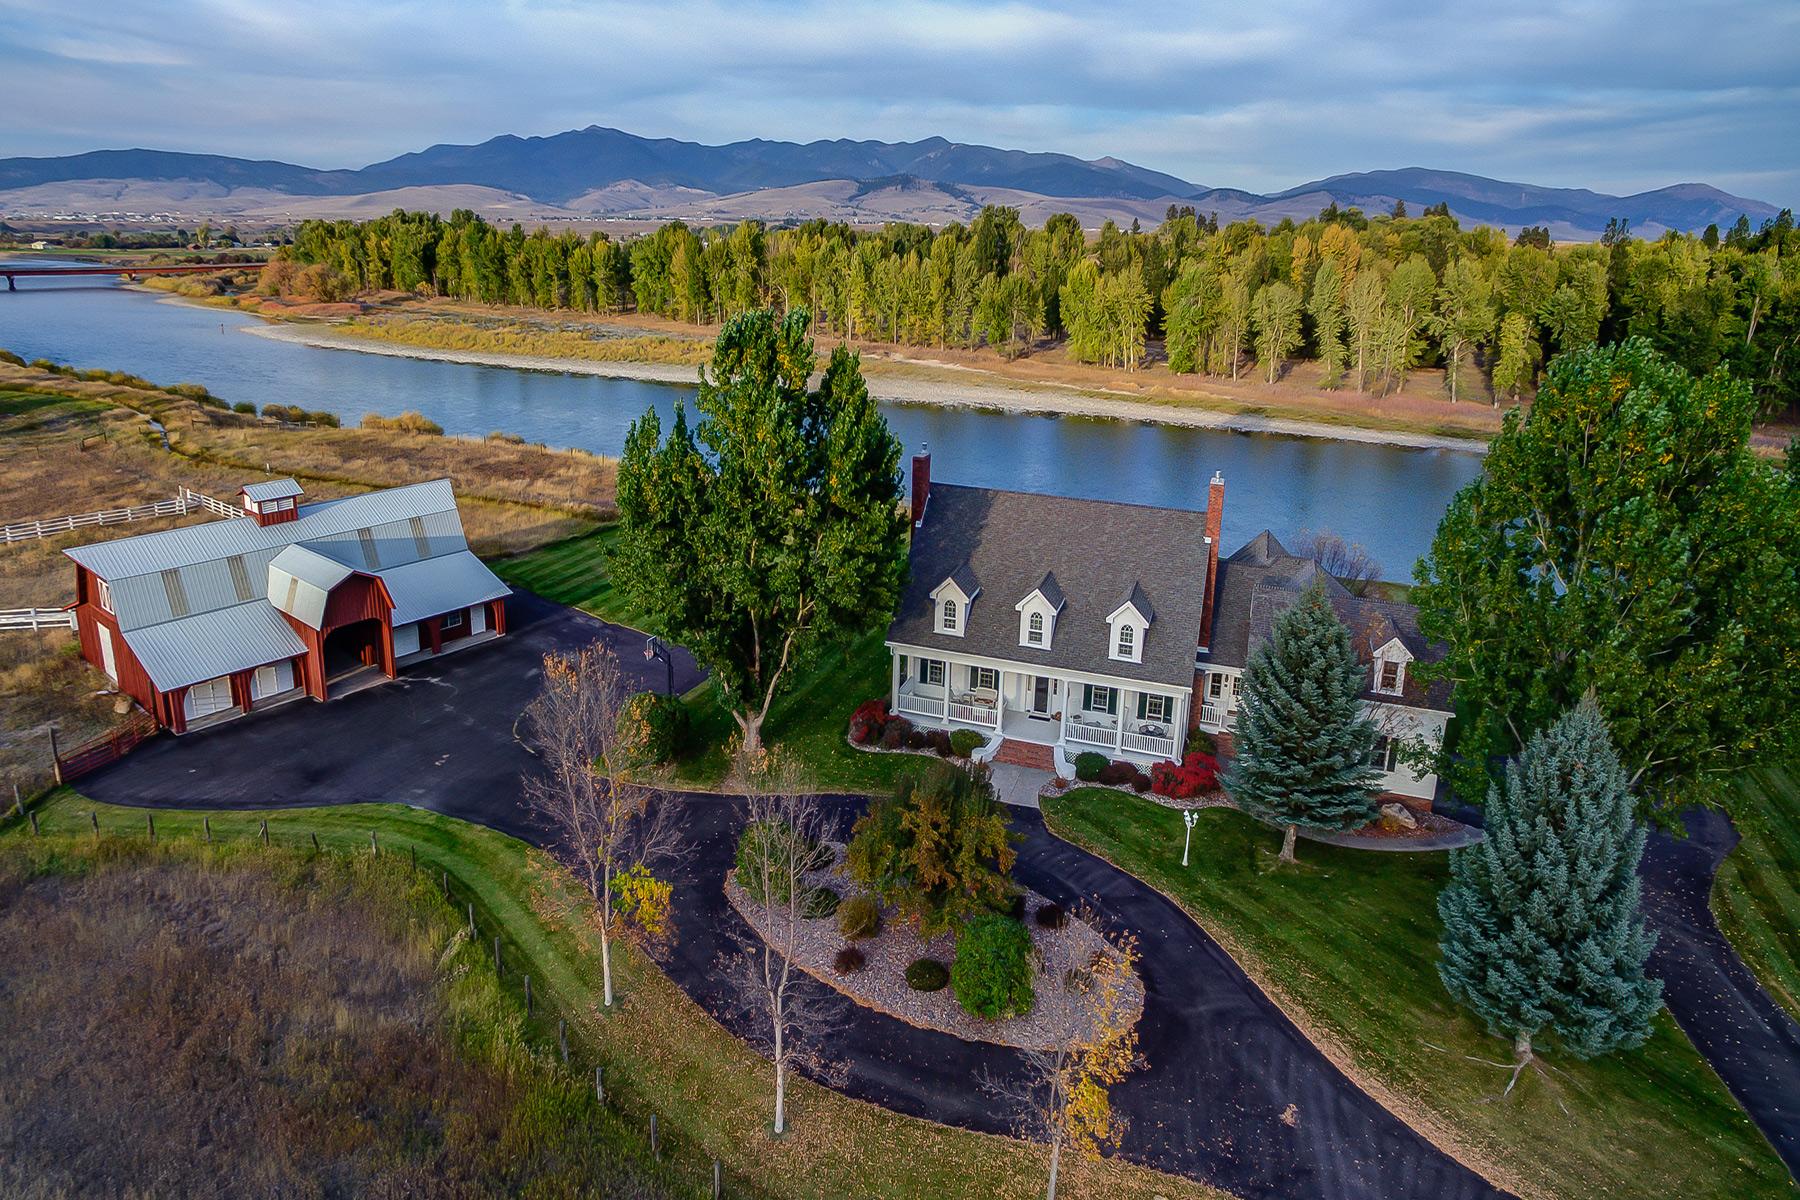 Single Family Home for Sale at 11060 Windemere Missoula, Montana, 59804 United States